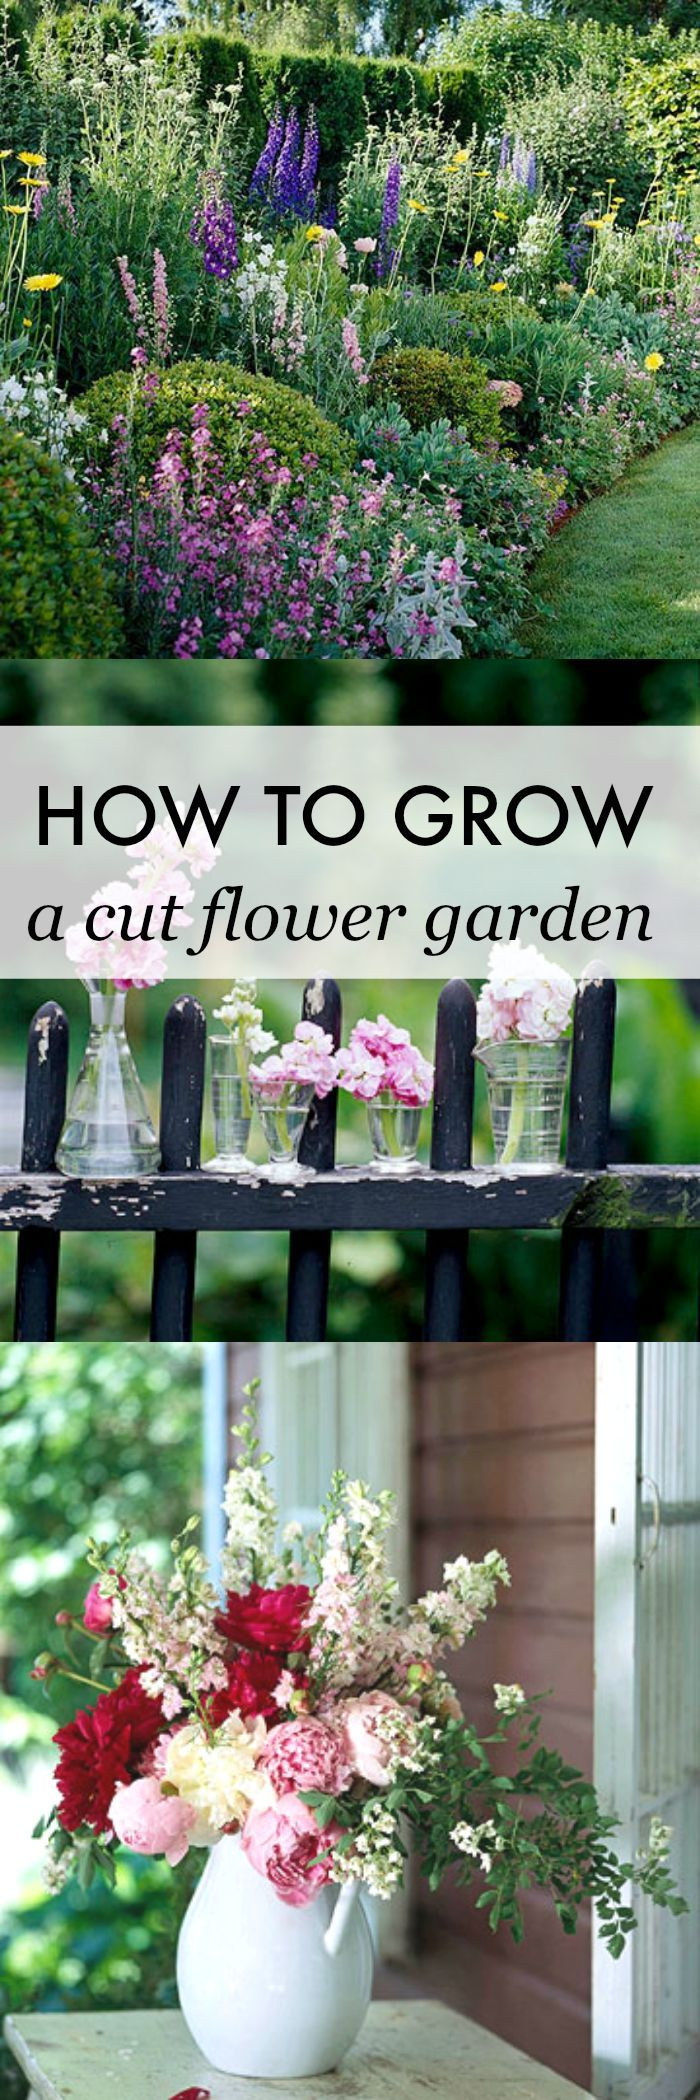 How To Grow A Cut Flower Garden Cut flower garden Beautiful